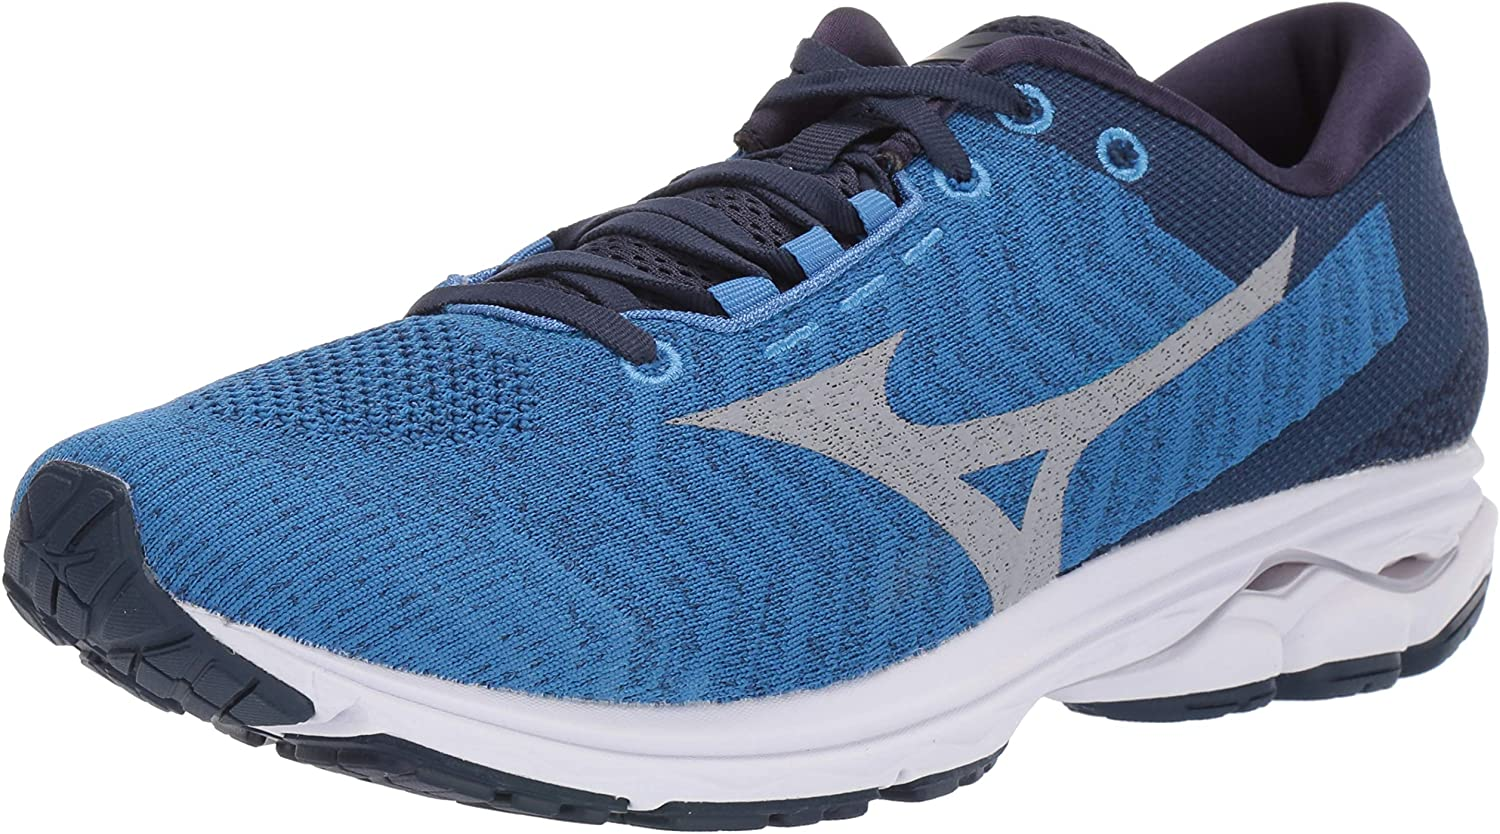 Men's Mizuno Wave Rider 21